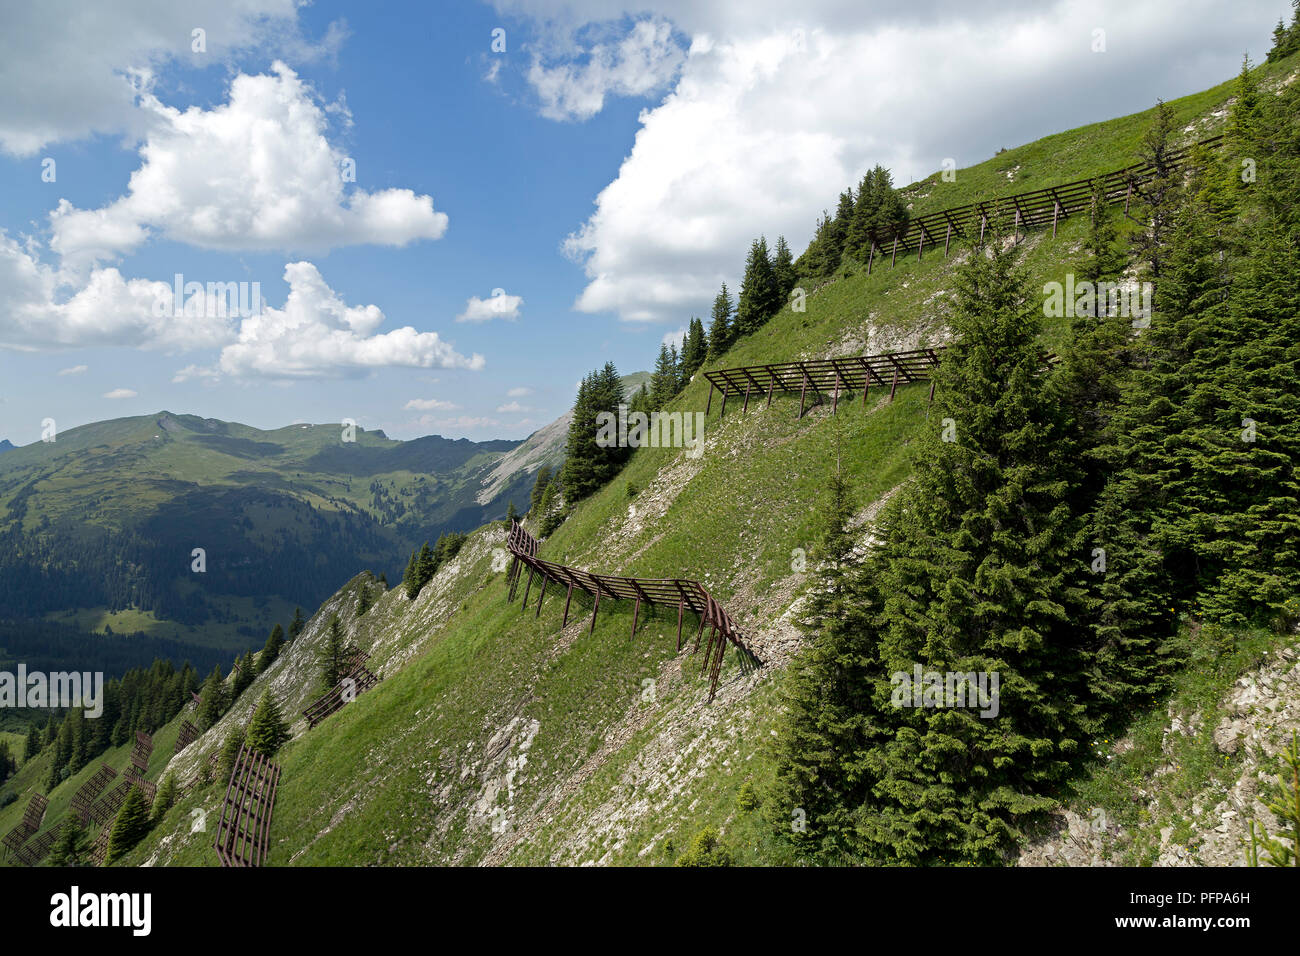 avalanche barriers, Walmendinger Horn, Mittelberg, little Walser valley, Austria - Stock Image